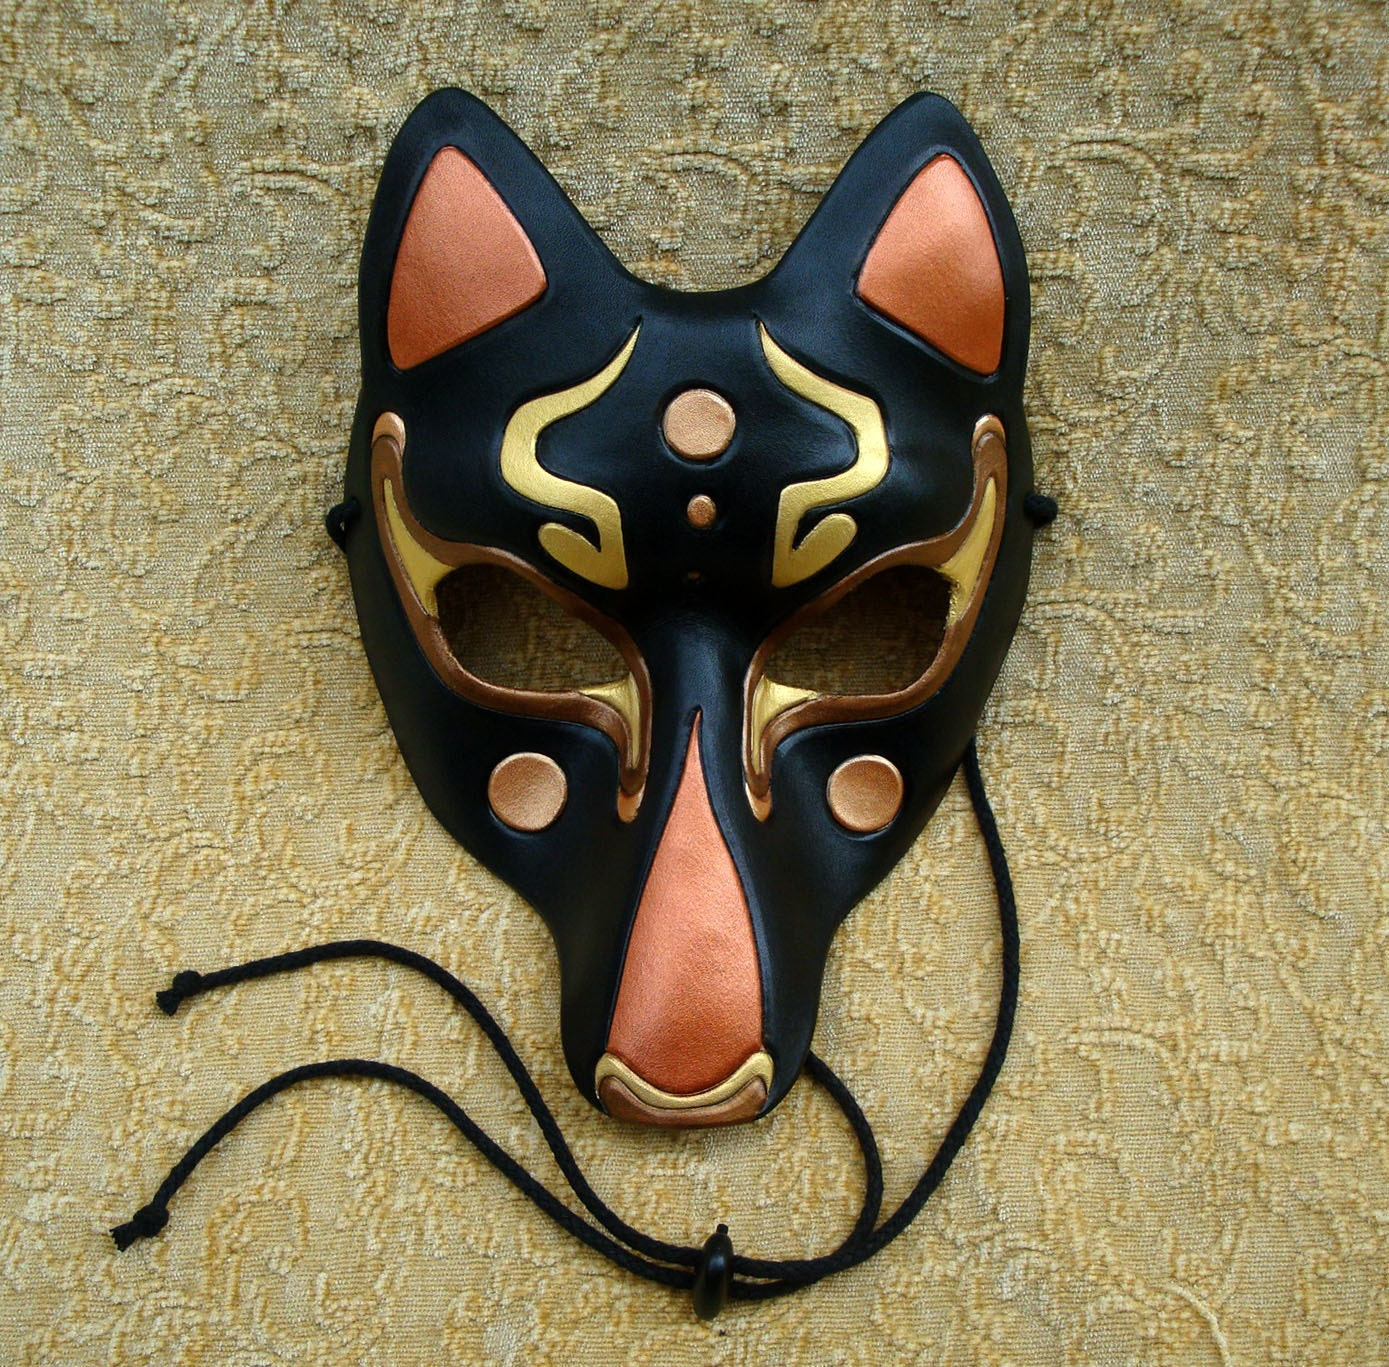 Japanese wolf mask - photo#26